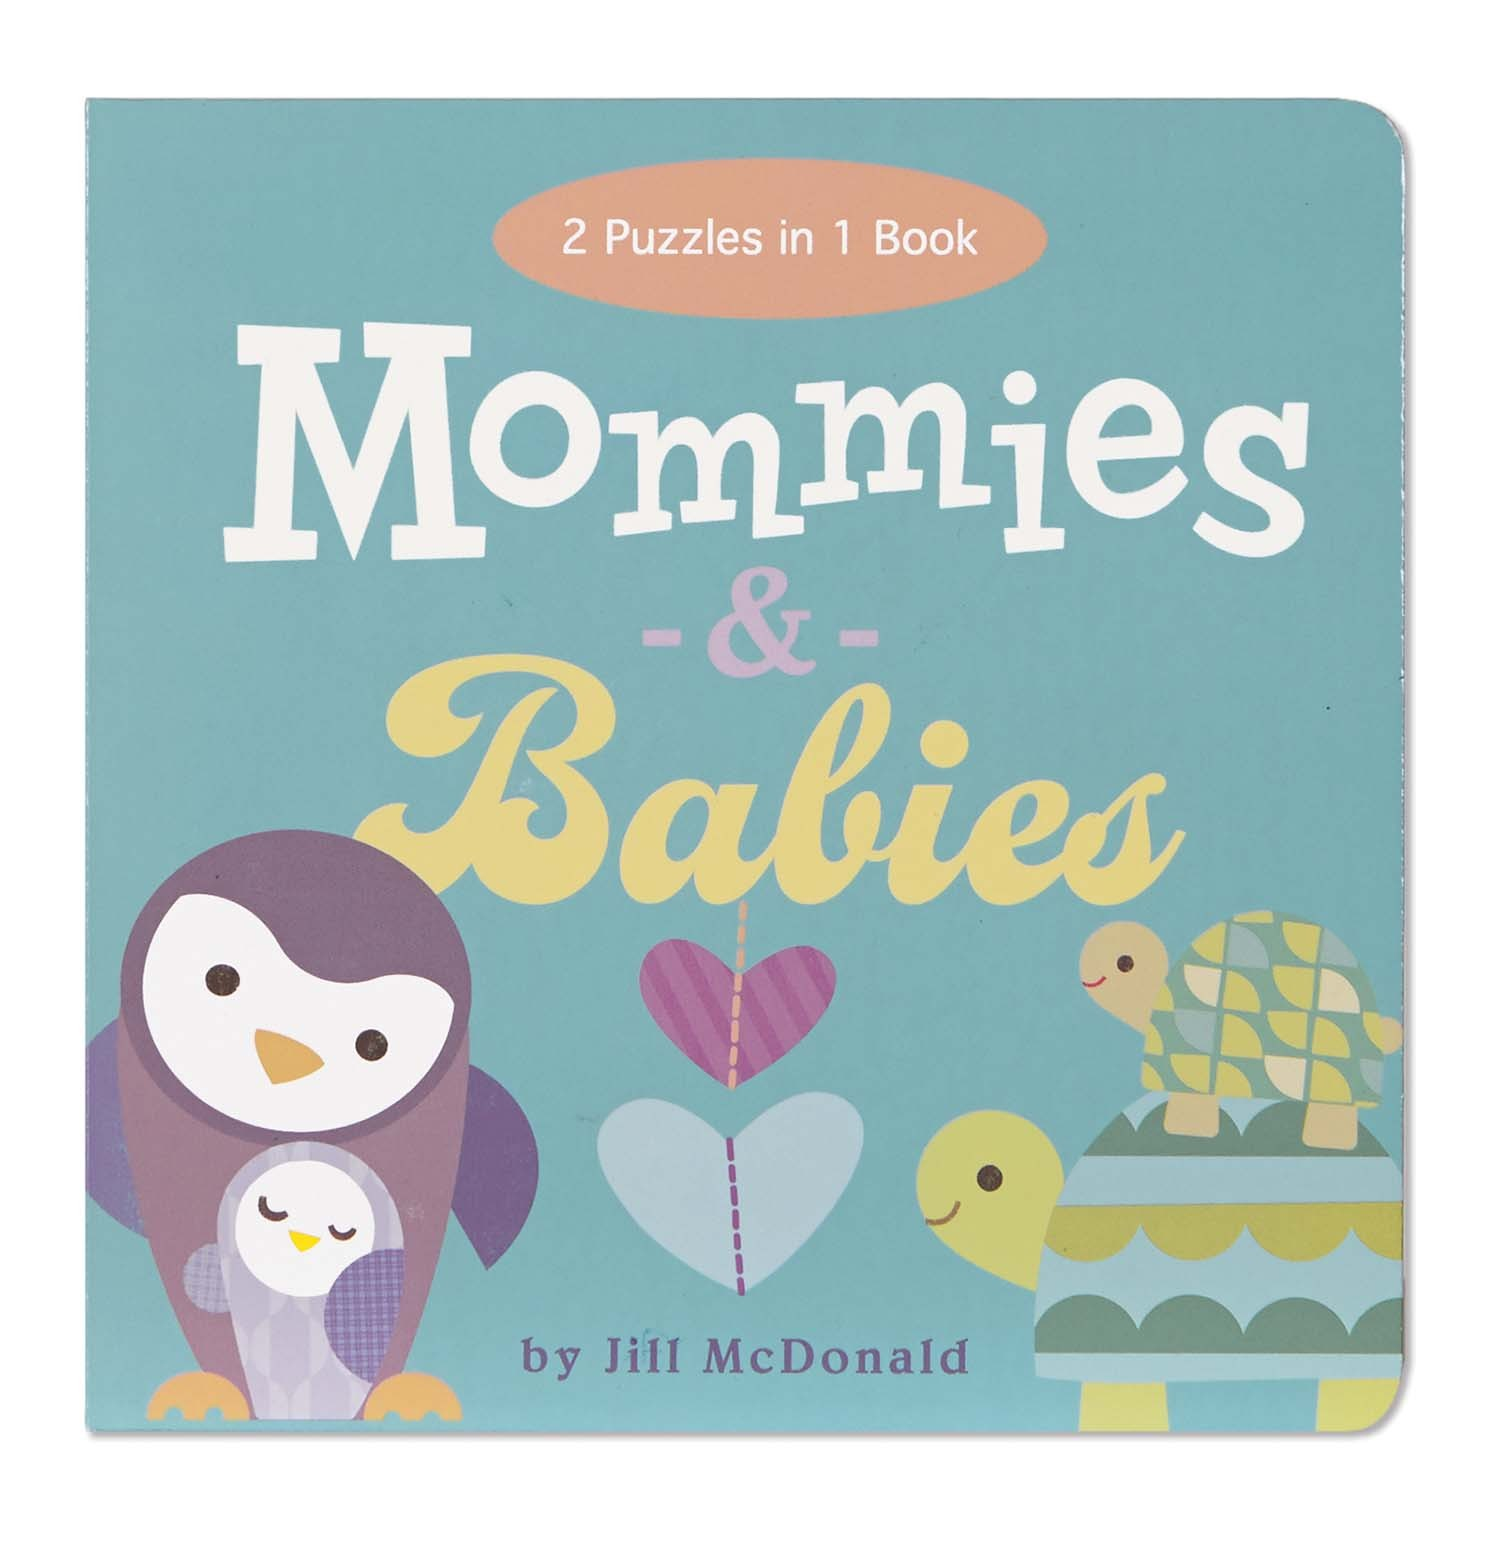 EU BBBP 12697 MOMMIES & BABIES PUZZLE BOOK